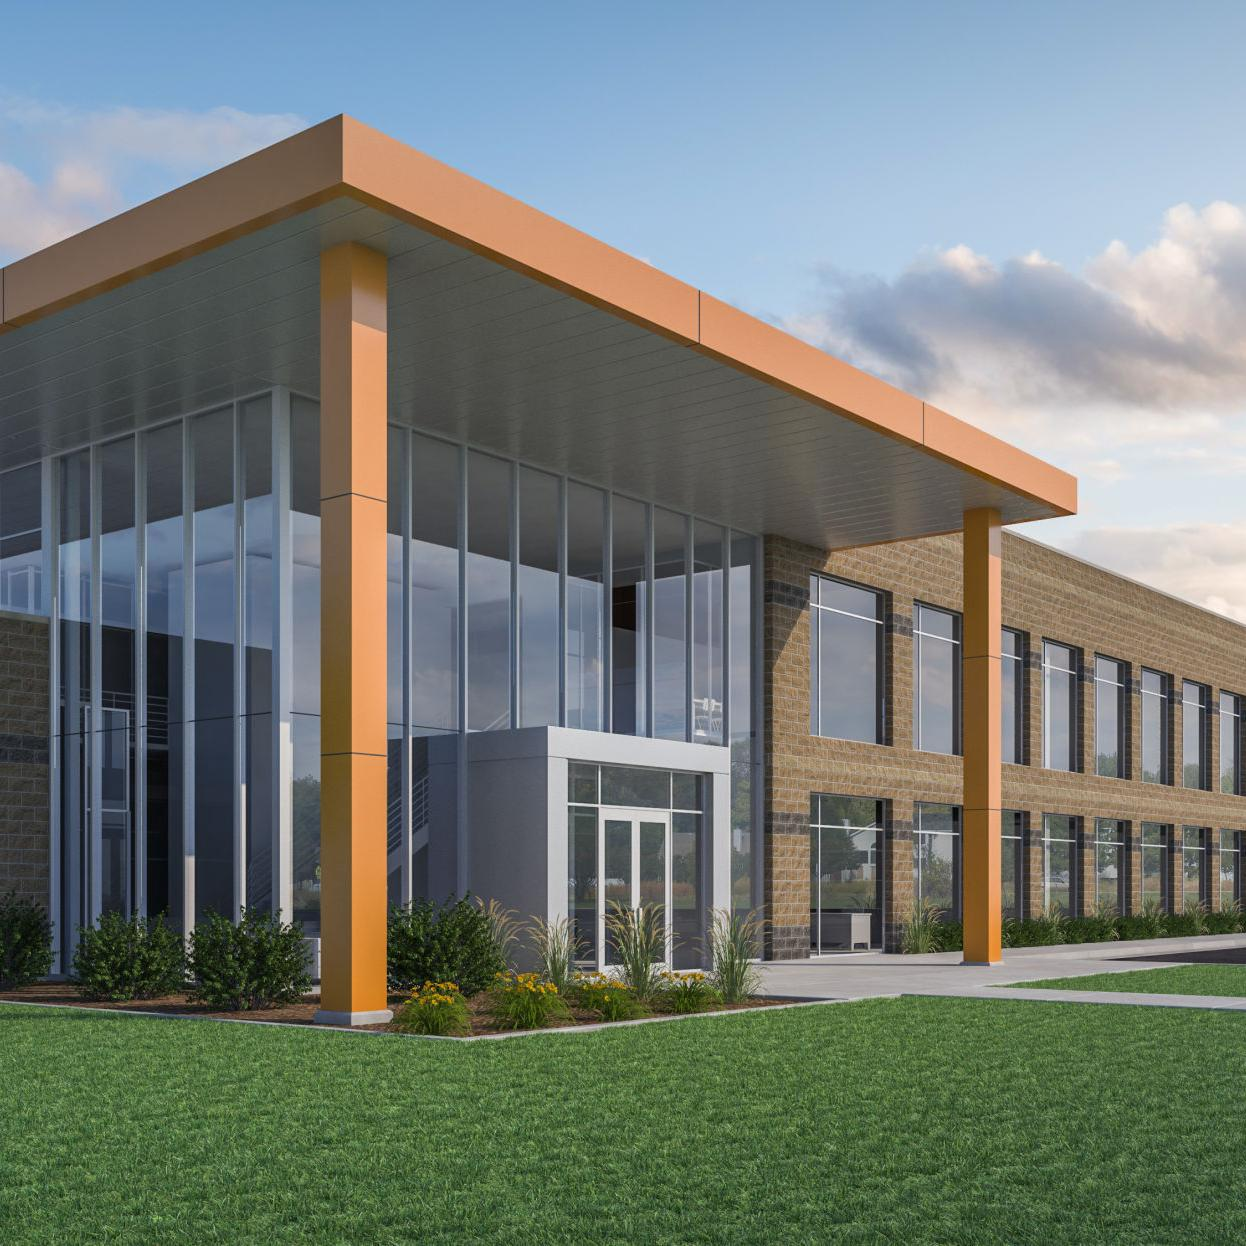 Juniper Systems seeks 52,000-square-foot building addition